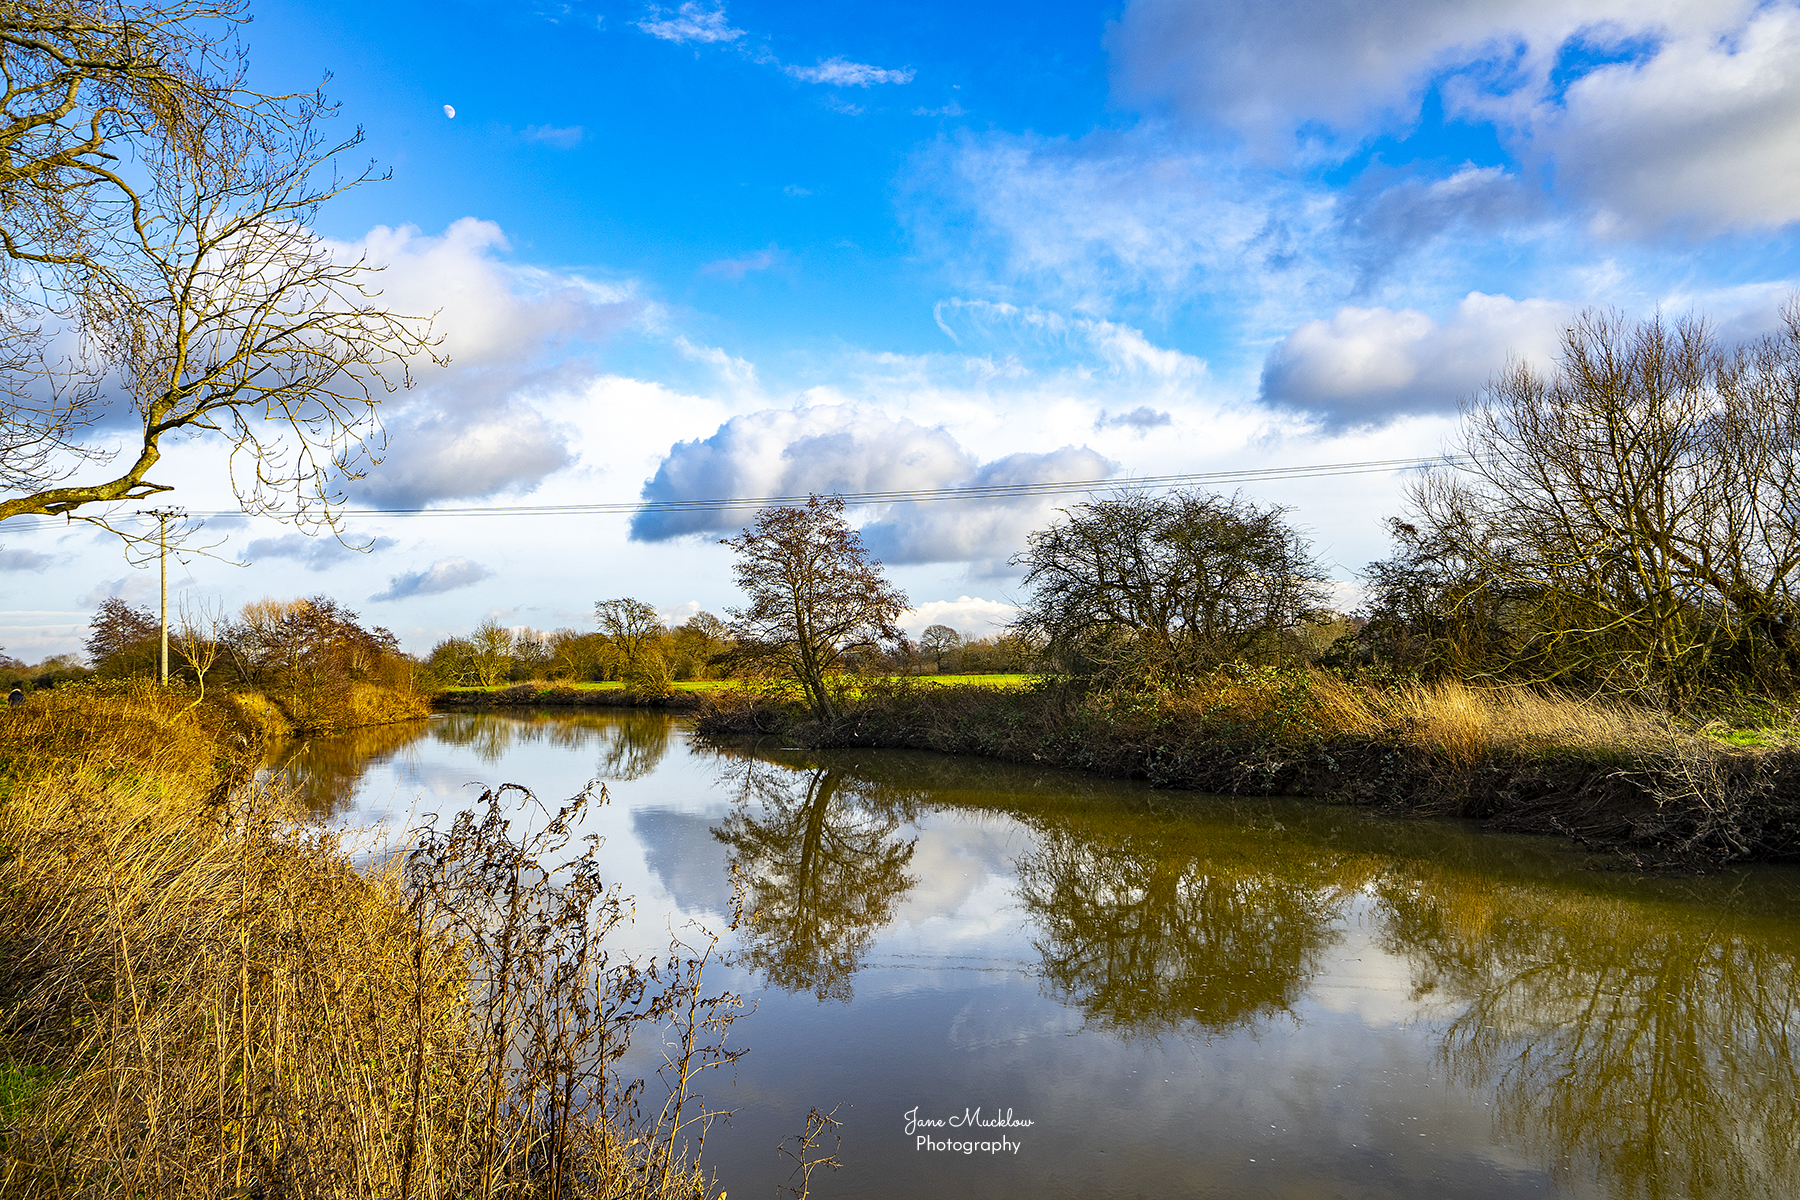 Photo of winter reflections in the river Medway near Tonbridge, by Jane Mucklow